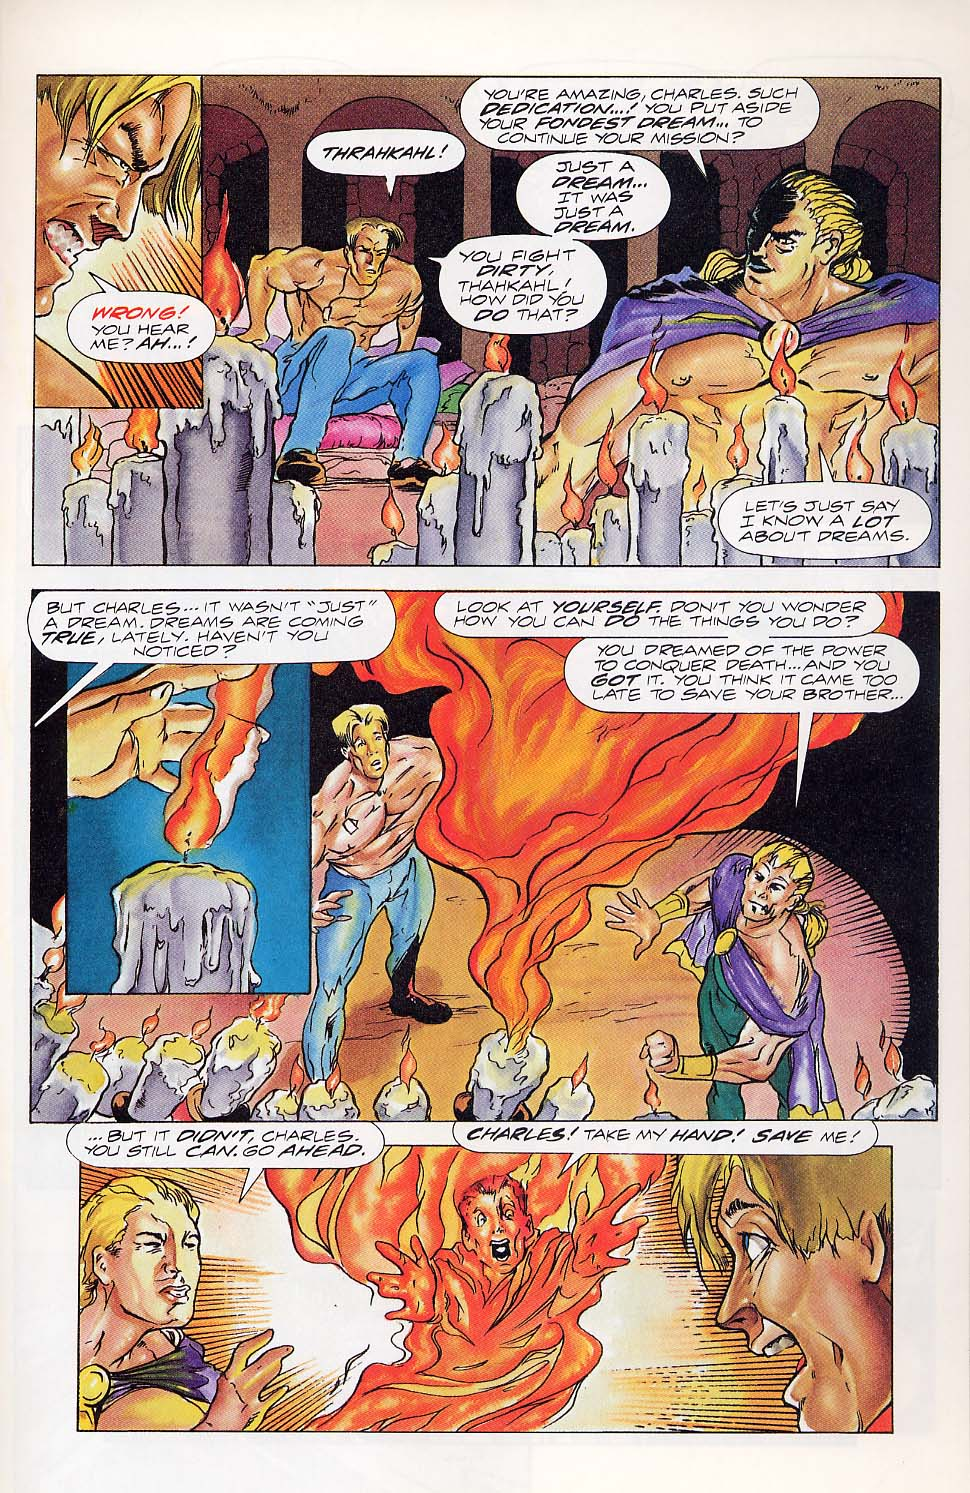 Read online Charlemagne comic -  Issue #5 - 19